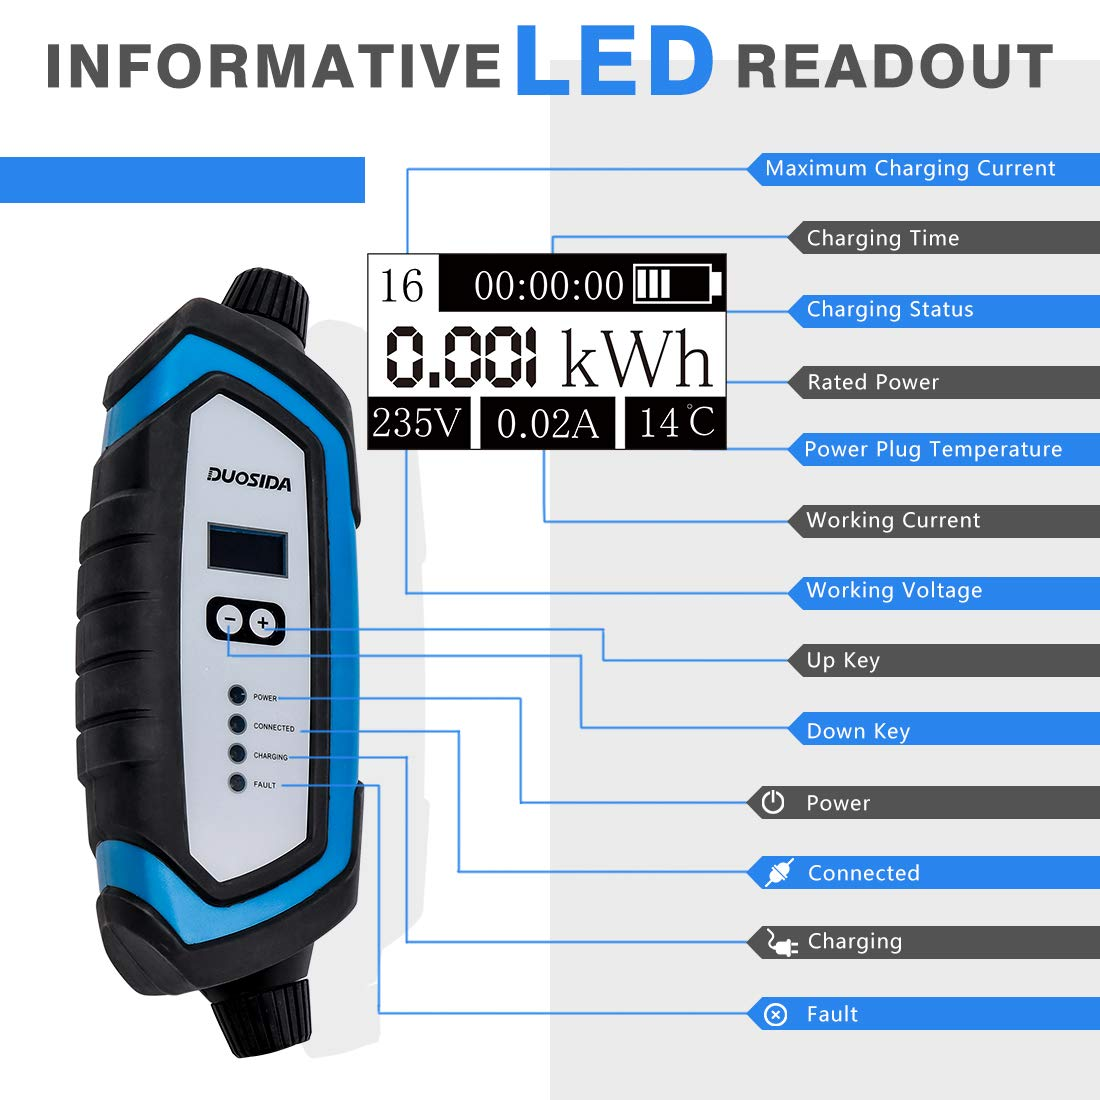 DUOSIDA Level 2 EV Charger (240V, 32A, 25FT) Portable EV Charging Cable EVSE Electric Vehicle Charger with NEMA 14-50P for Chevy Volt, BMW, Nissan Leaf, Fiat, Ford Fusion, Toyota Prius Prime by DUOSIDA (Image #3)